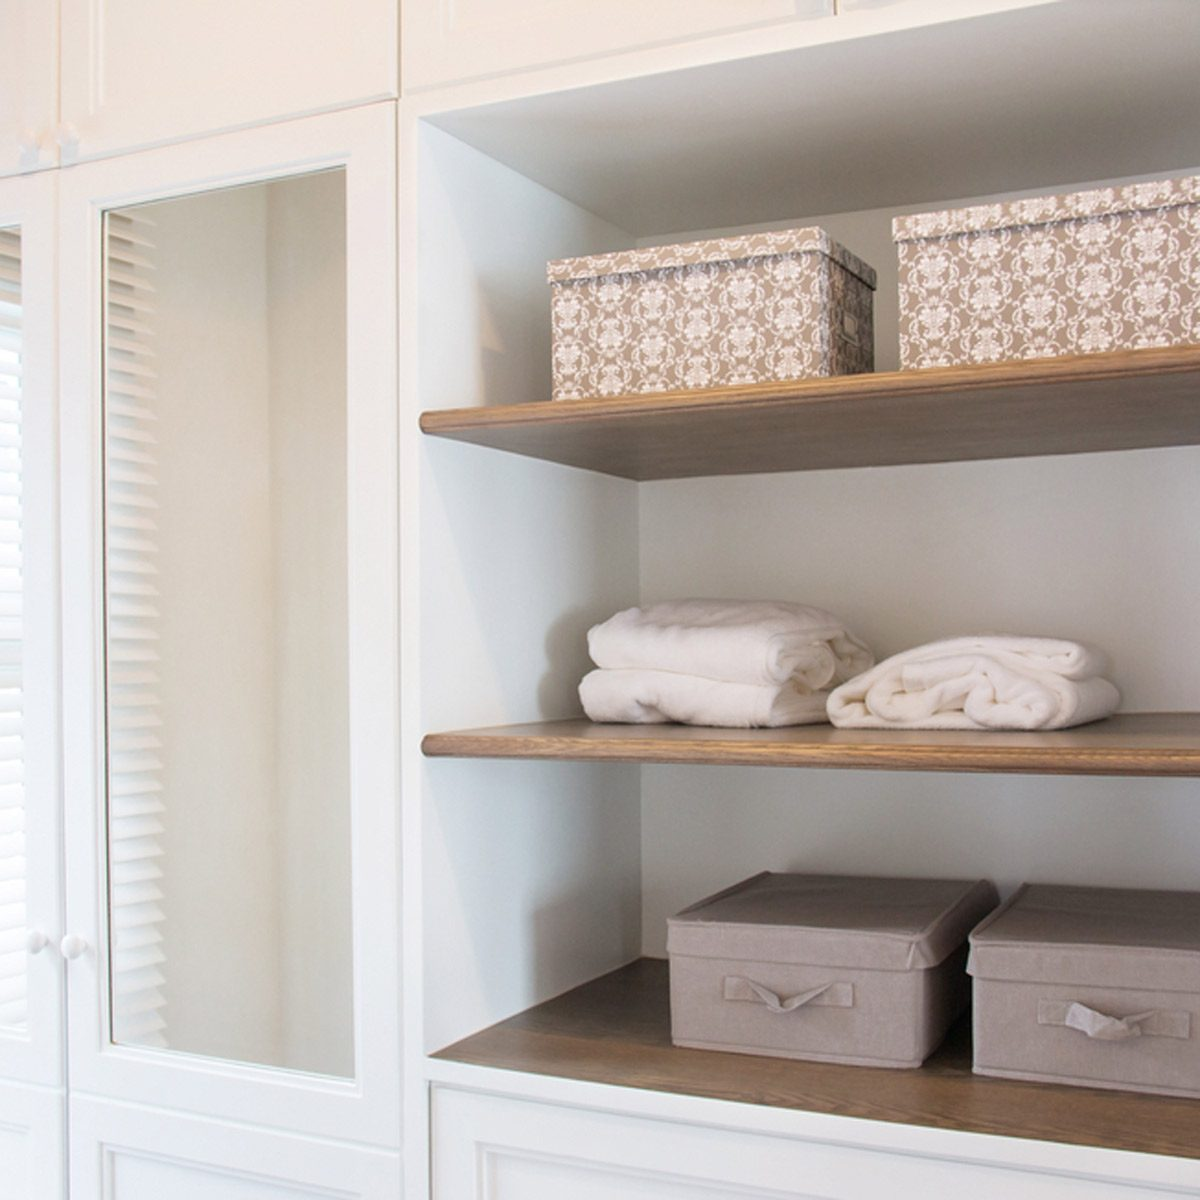 shutterstock_644698957 closet shelves basket box storage